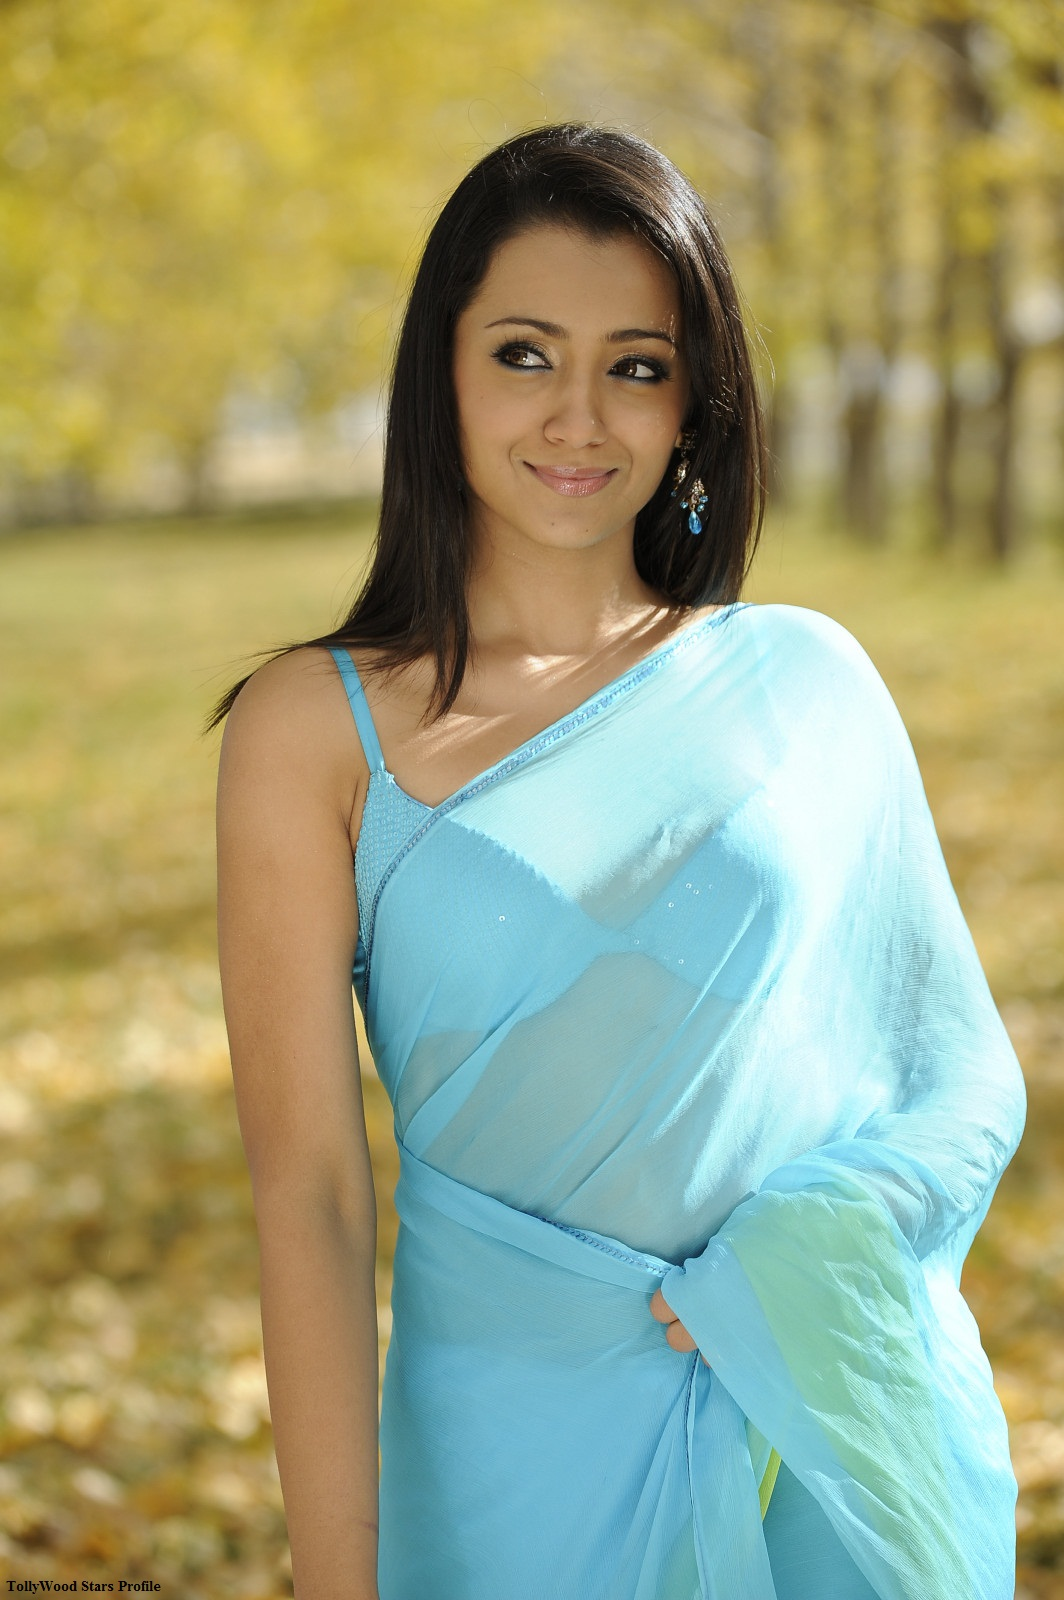 Trisha Hot Blue Saree Stills From Body Guard Movie -9800